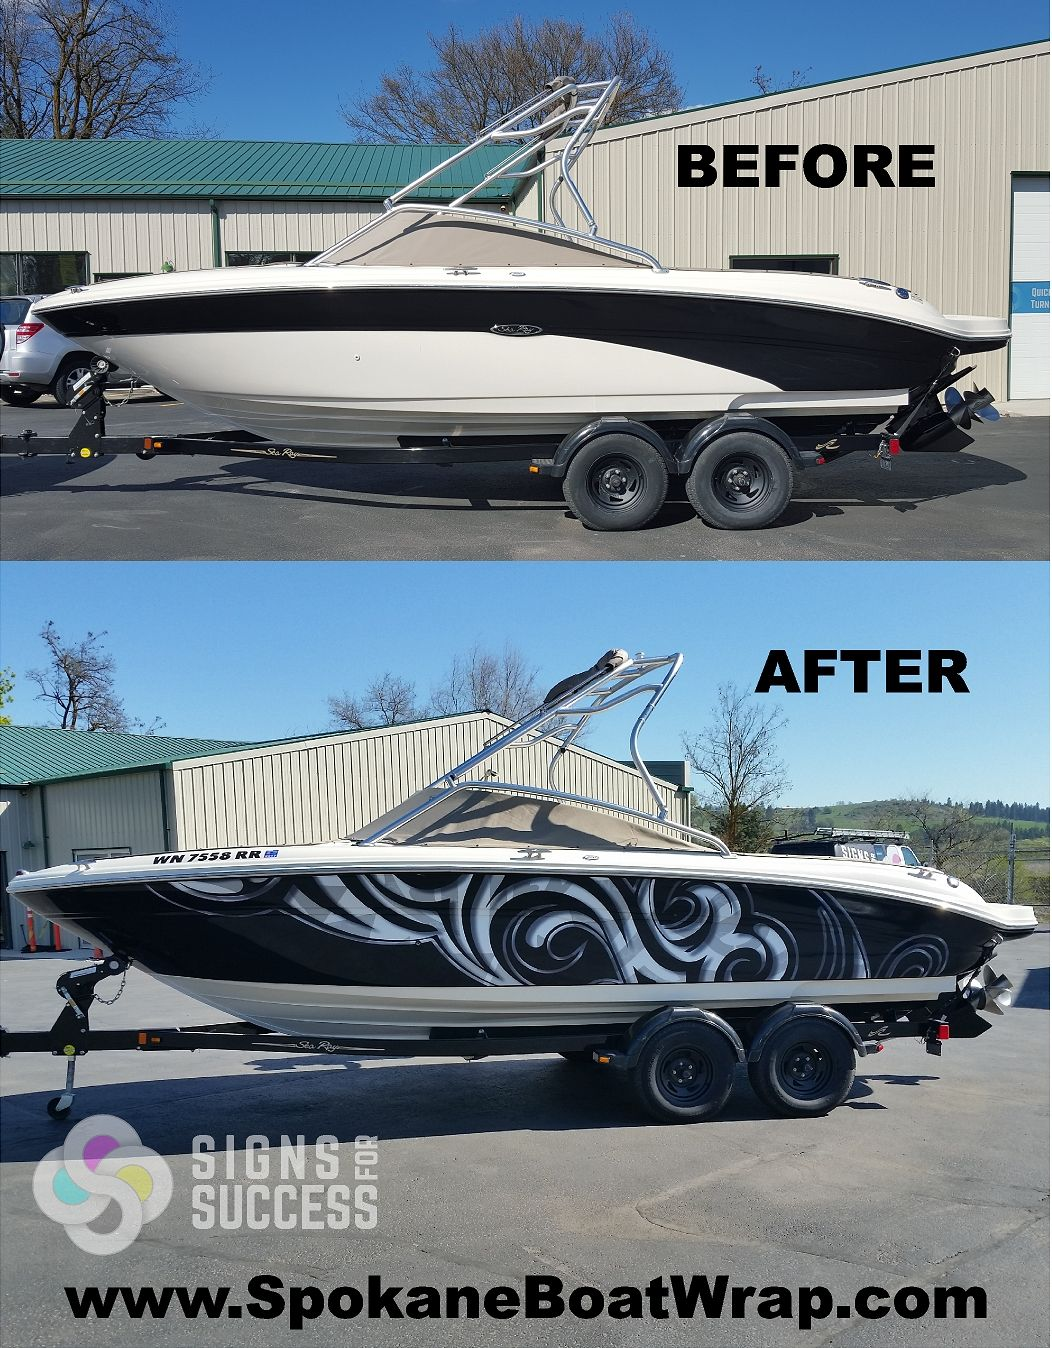 Sea Ray Custom Vinyl Wrap Boat Wraps Custom Vinyl Pinterest - Sporting boat decalsbest boat wraps custom vinyl images on pinterest boat wraps